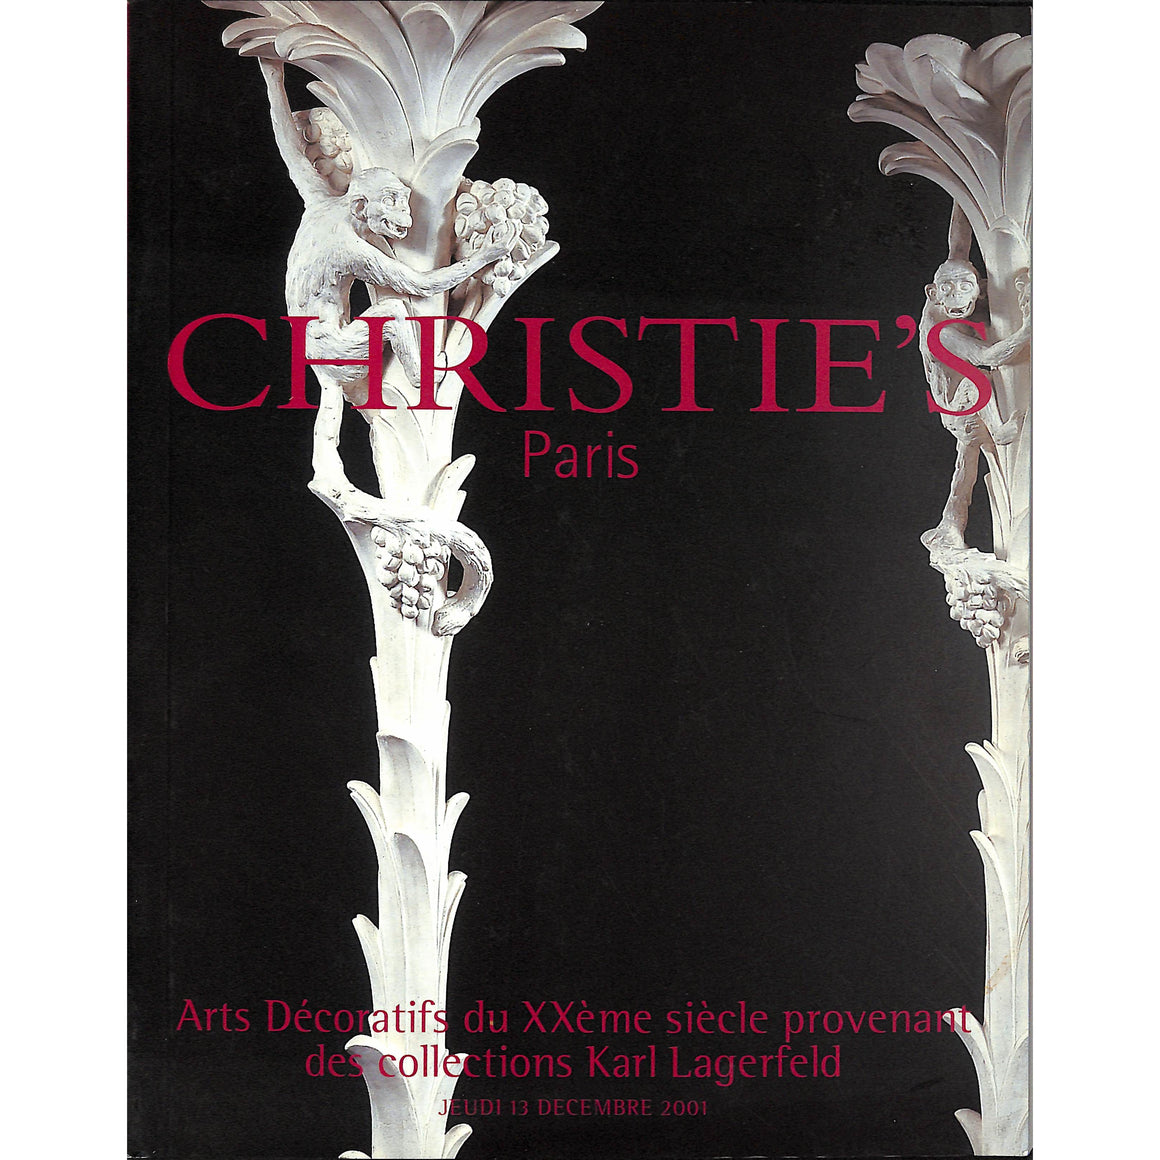 Christie's Arts Decoratifs du XXe'me siecle provenant des collections Karl Lagerfeld